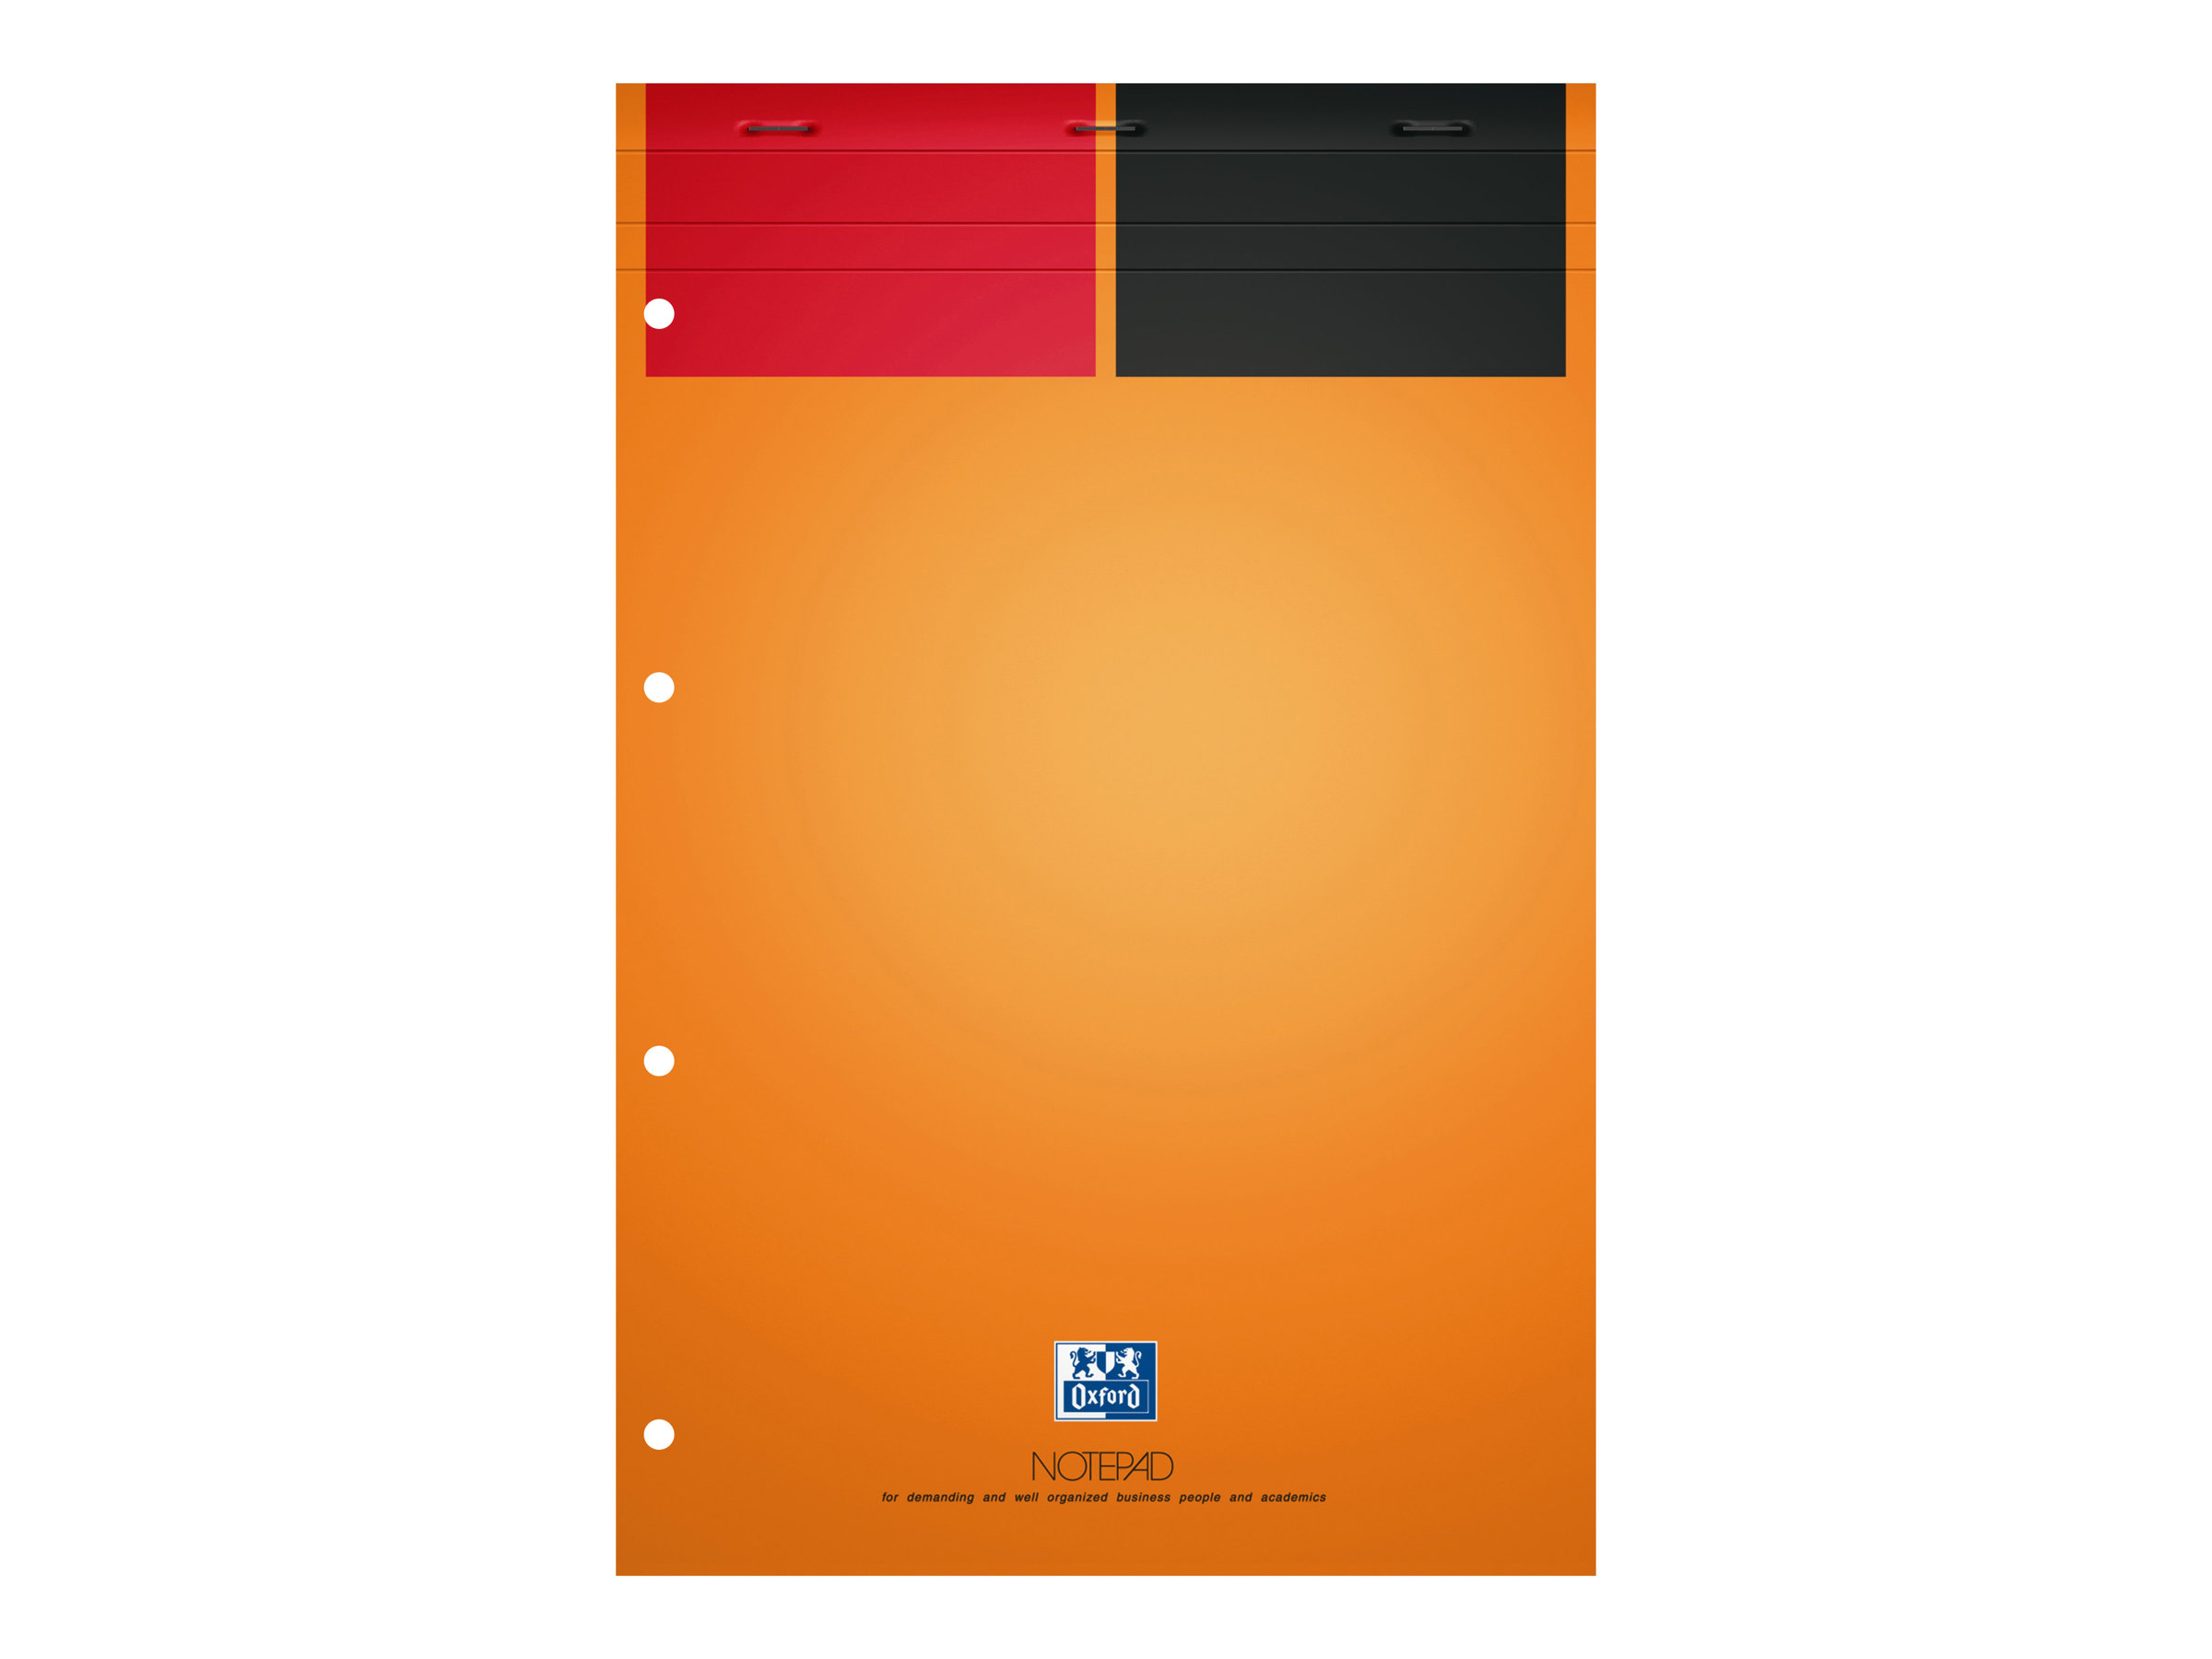 Oxford International A4+ - bloc notes